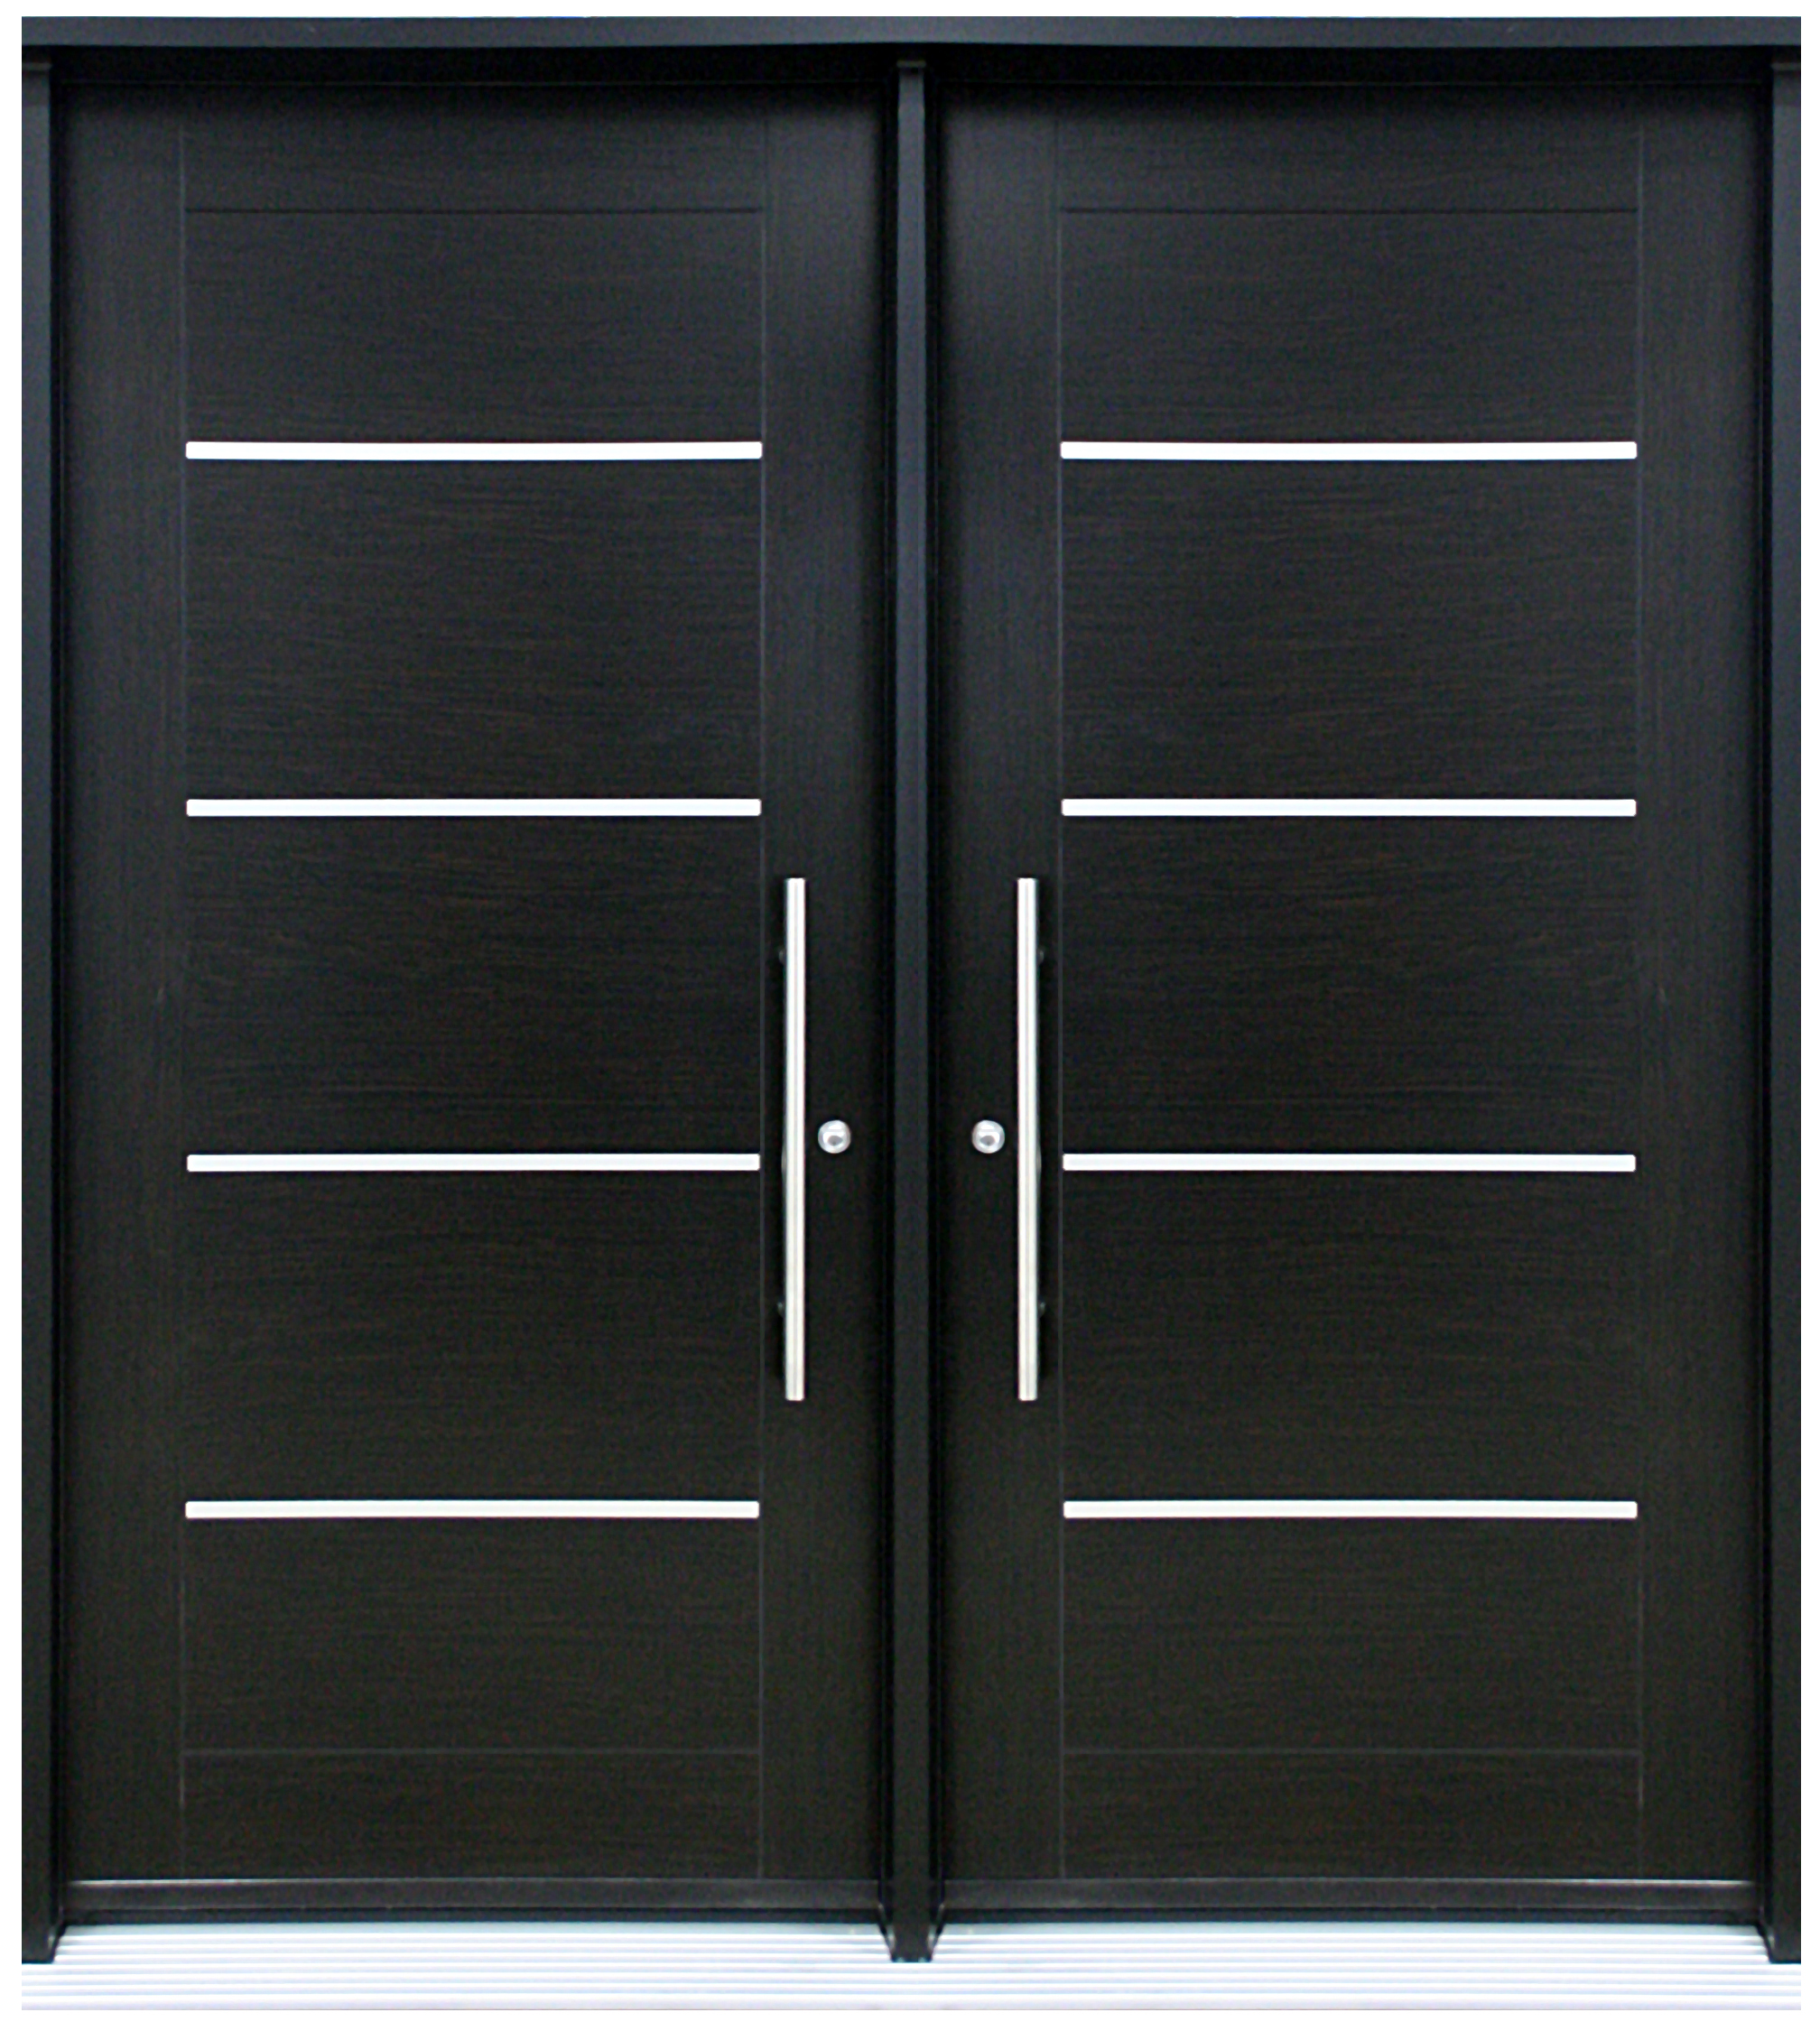 Porte contemporaine sigma 2 porte double portatec for Portes interieures bois contemporaines